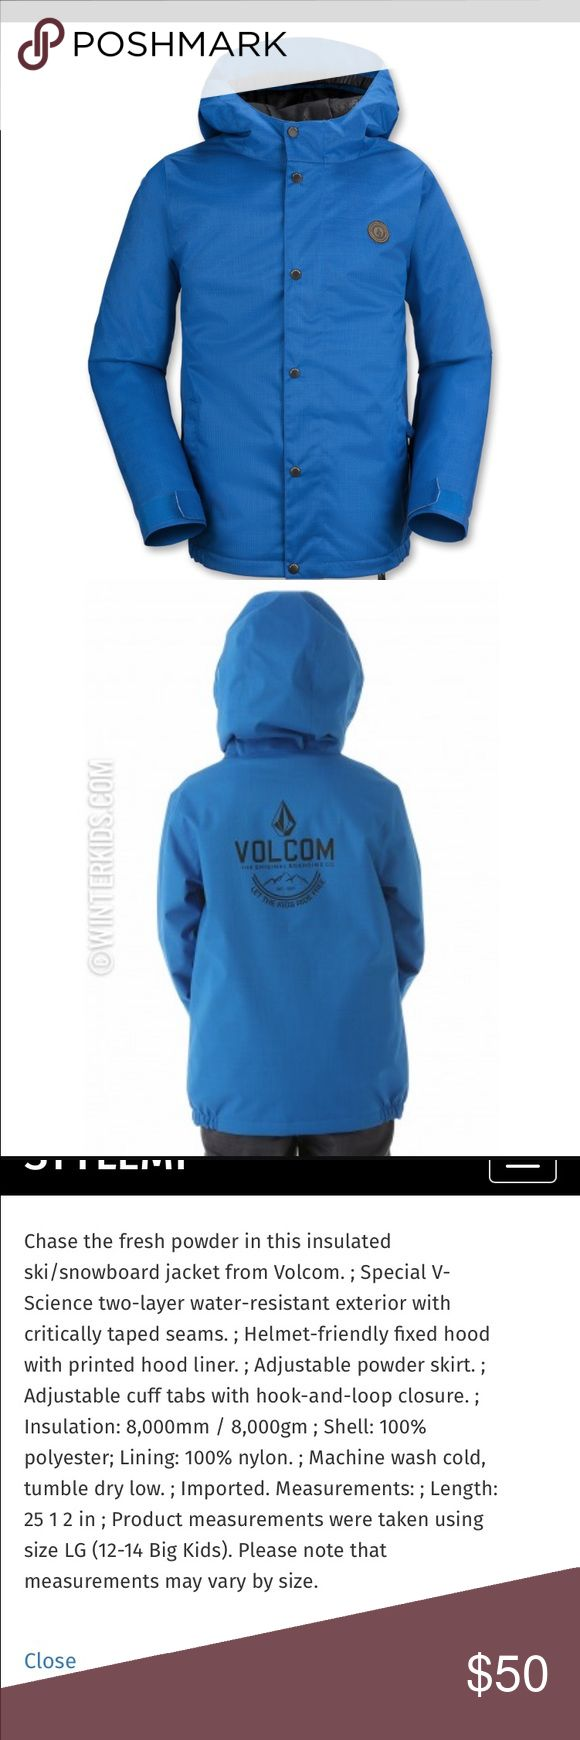 Volcom wolf insulated snowboard jacket xl youth NWT volcom boys snowboard jacket size xl would fit women small/medium I bought this for myself for snowboarding fits perfect except arms are a tad short :( awesome jacket for a great steak it is brand new with tags exact one in picture let me know if you want more pics happy to upload :) Volcom Jackets & Coats Puffers